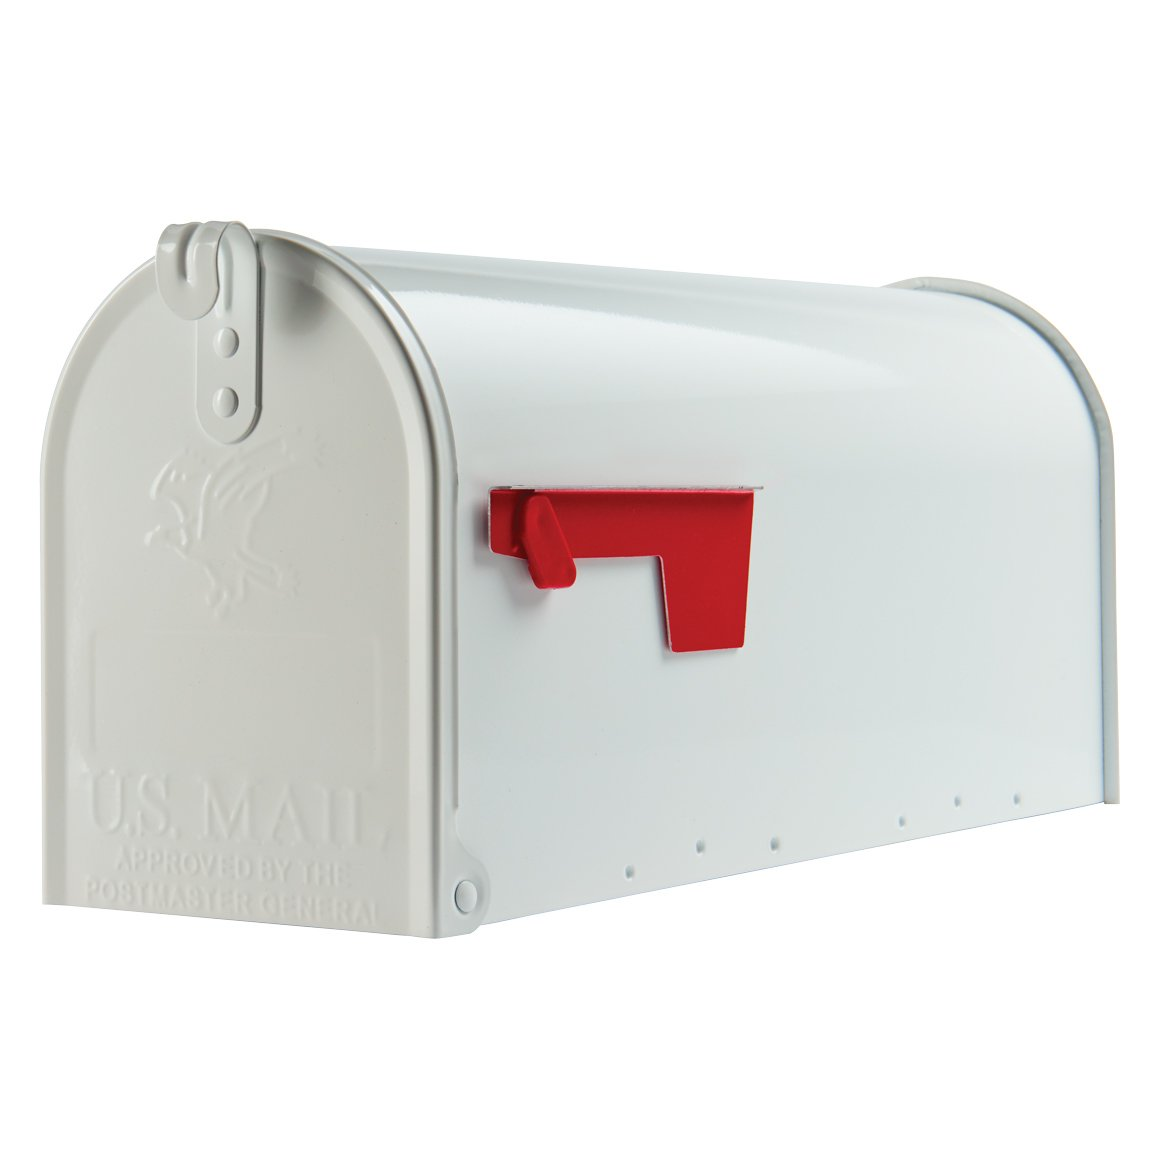 mailbox. Amazon.com: Gibraltar Mailboxes Elite Medium Capacity Galvanized Steel White, Post-Mount Mailbox, E1100W00: SOLAR GROUP: Home Improvement Mailbox